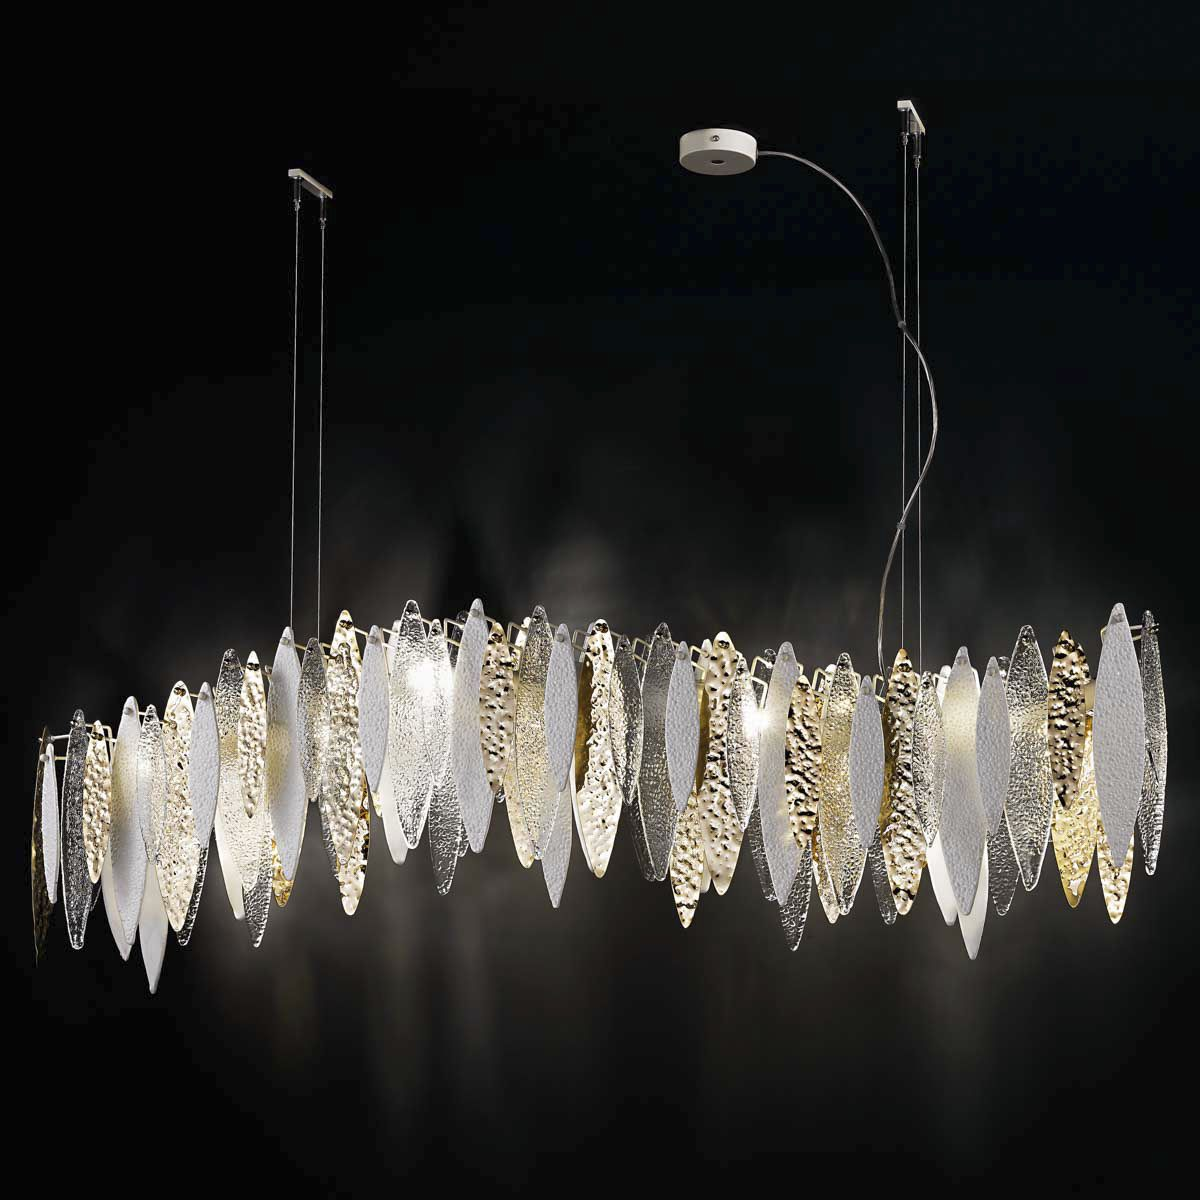 Pendant lamp / contemporary / metal / opalescent glass - ICE